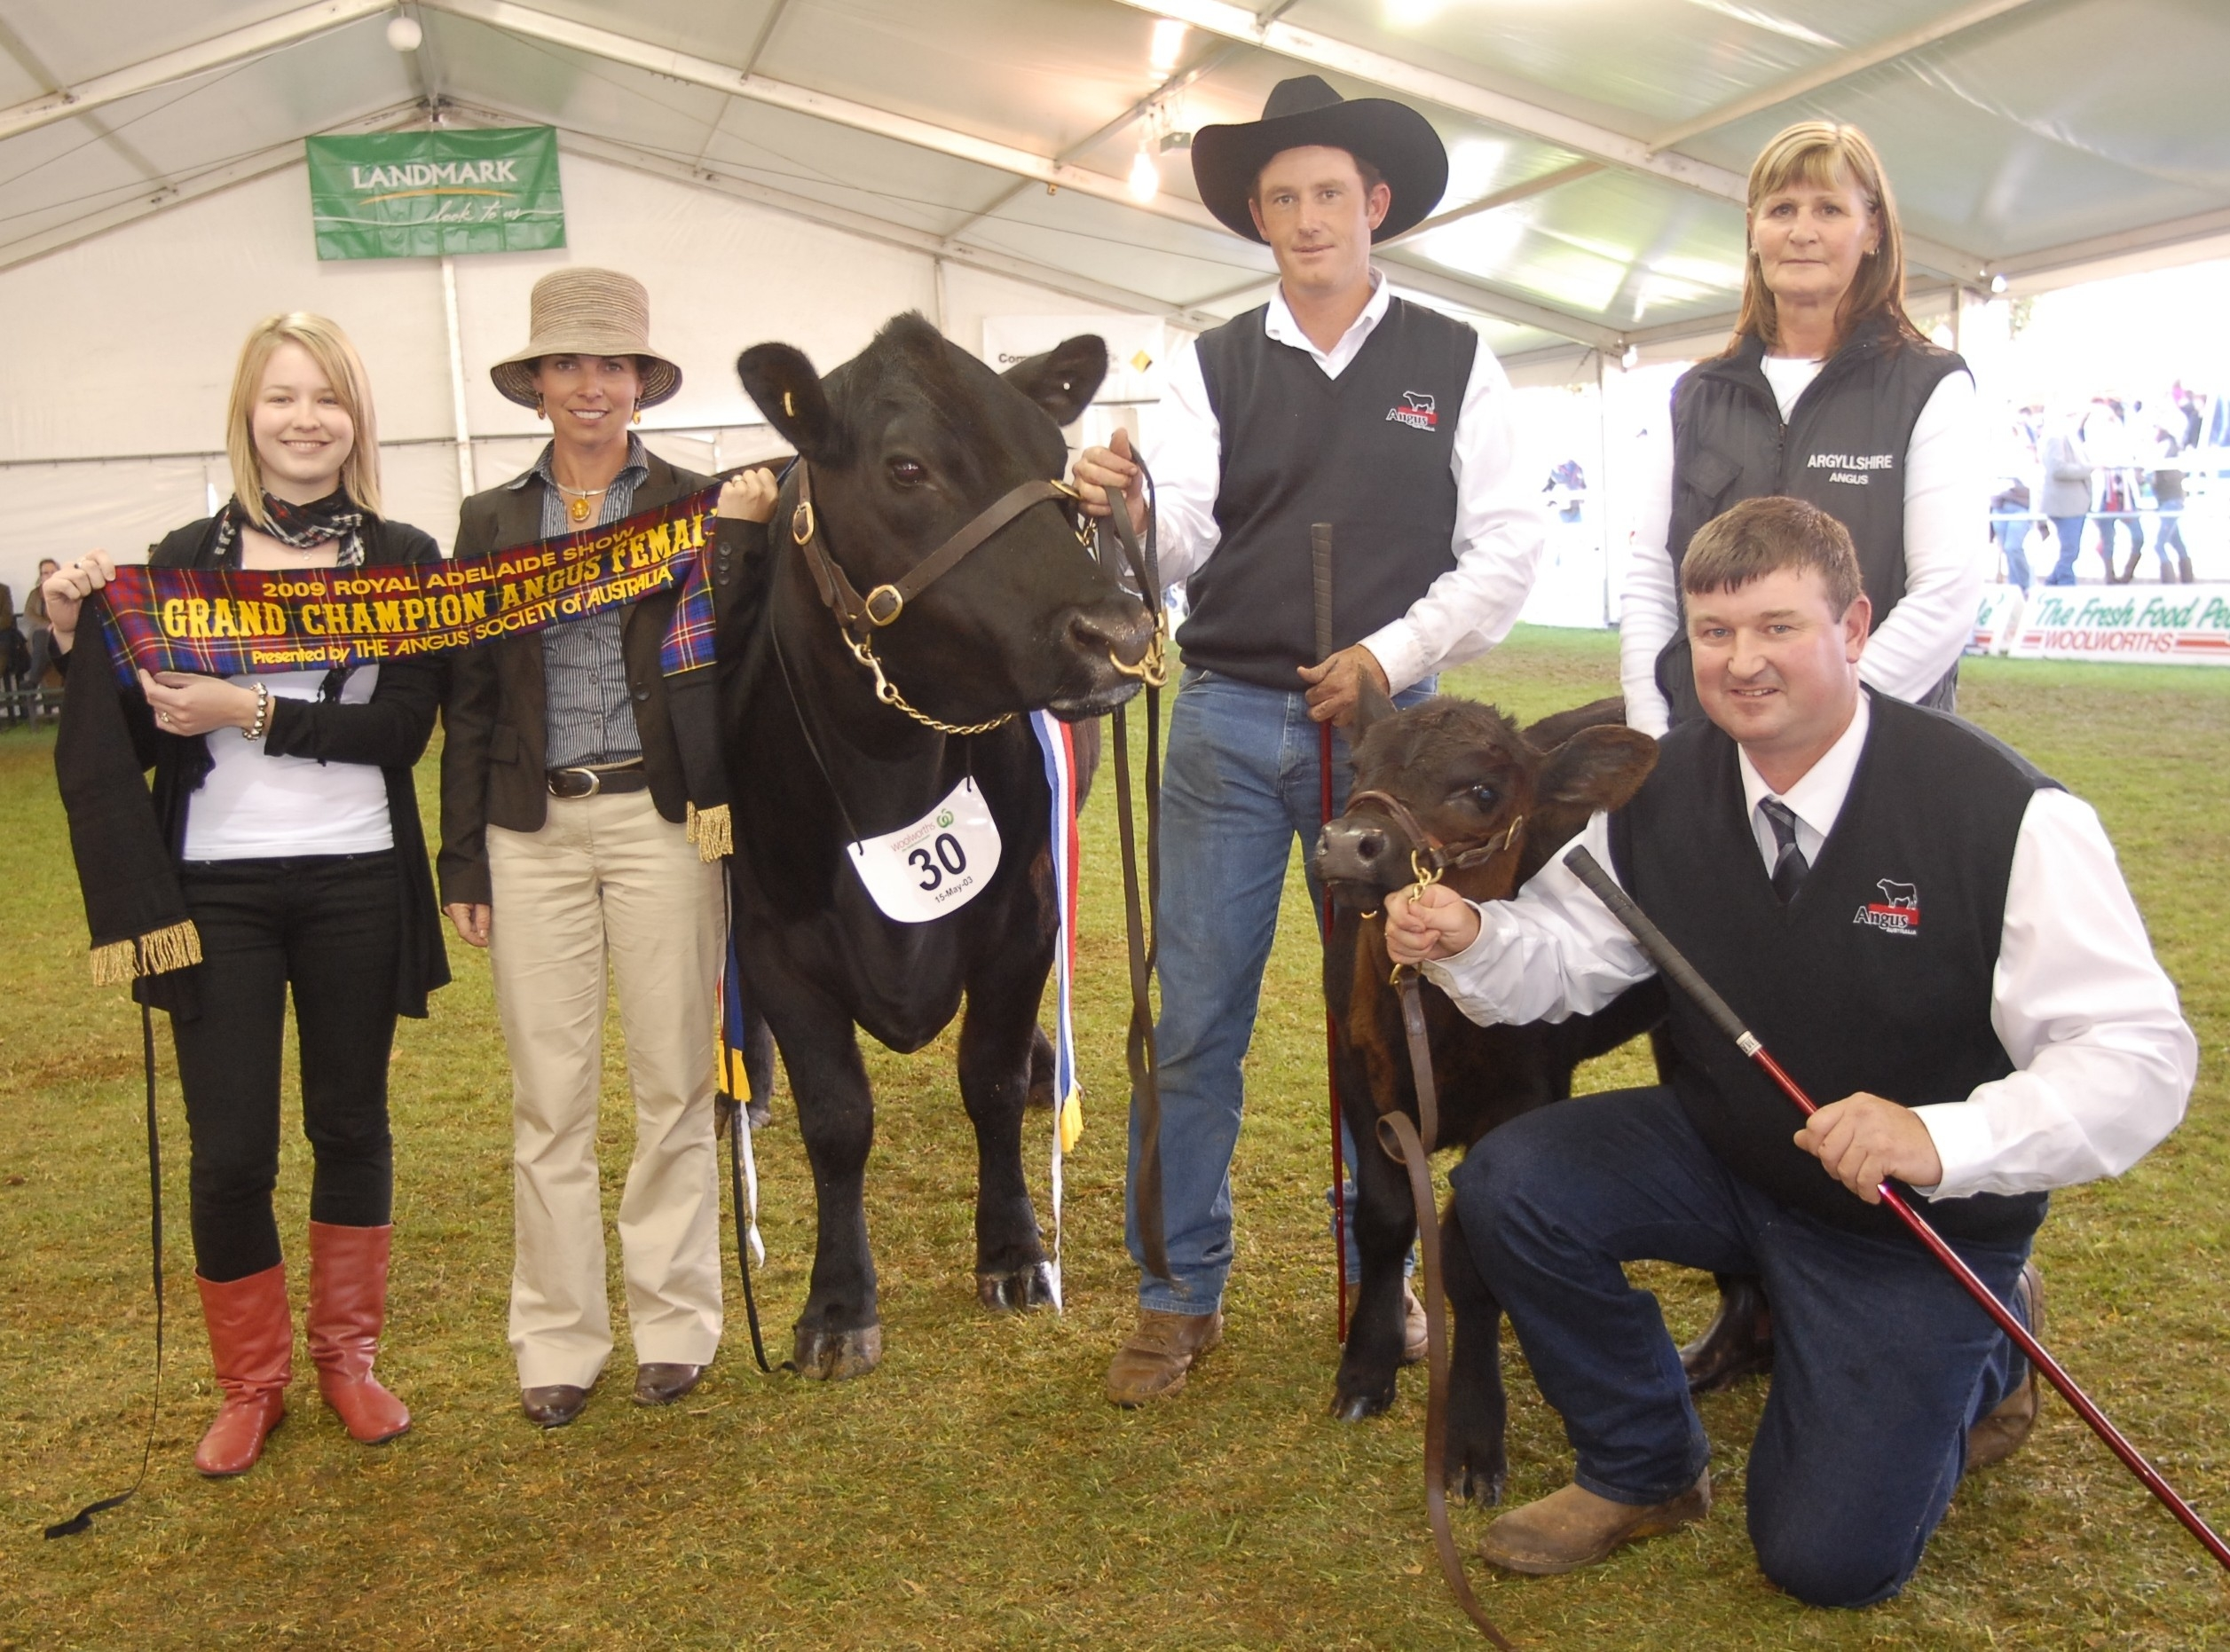 2009 Royal Adelaide Grand Champion Angus Female